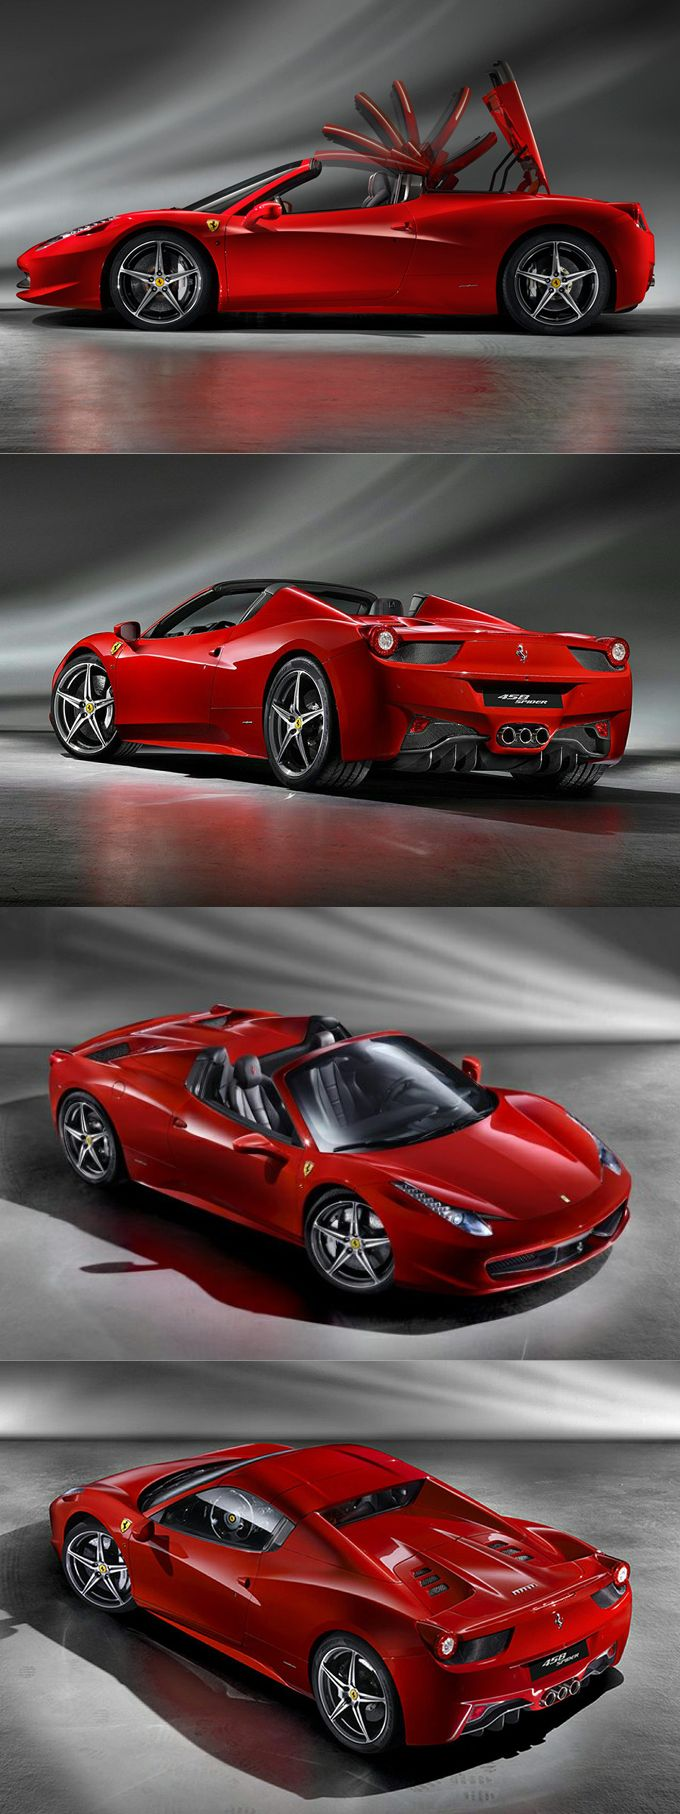 2011 Ferrari 458 Spider / 560hp 4.5l V8 / Red / Italy / 17